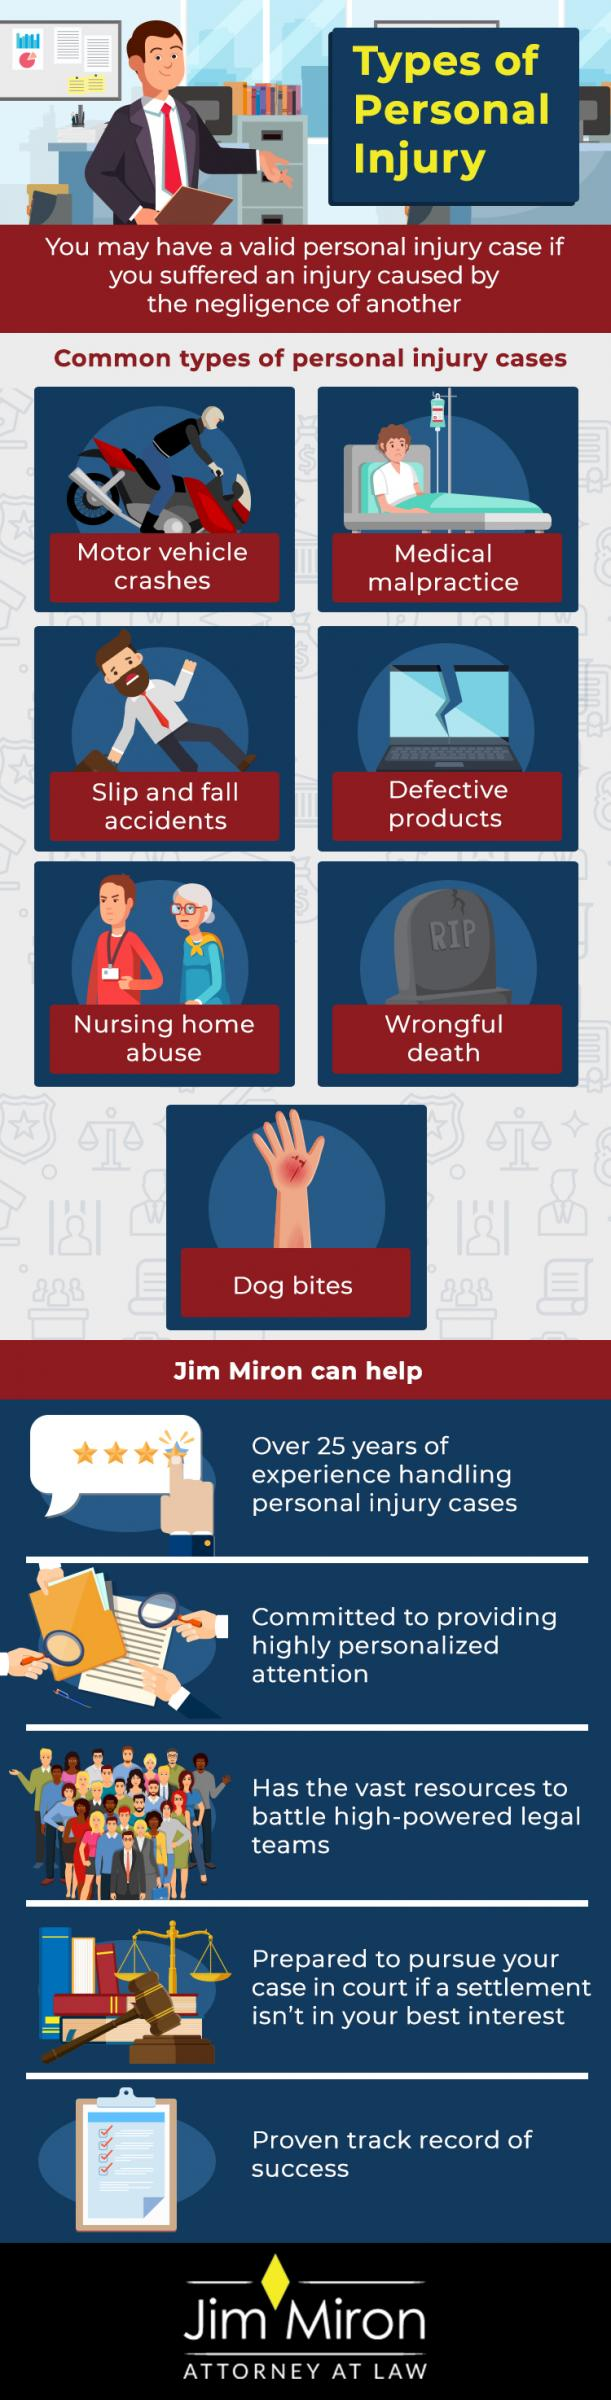 types of personal injury infographic